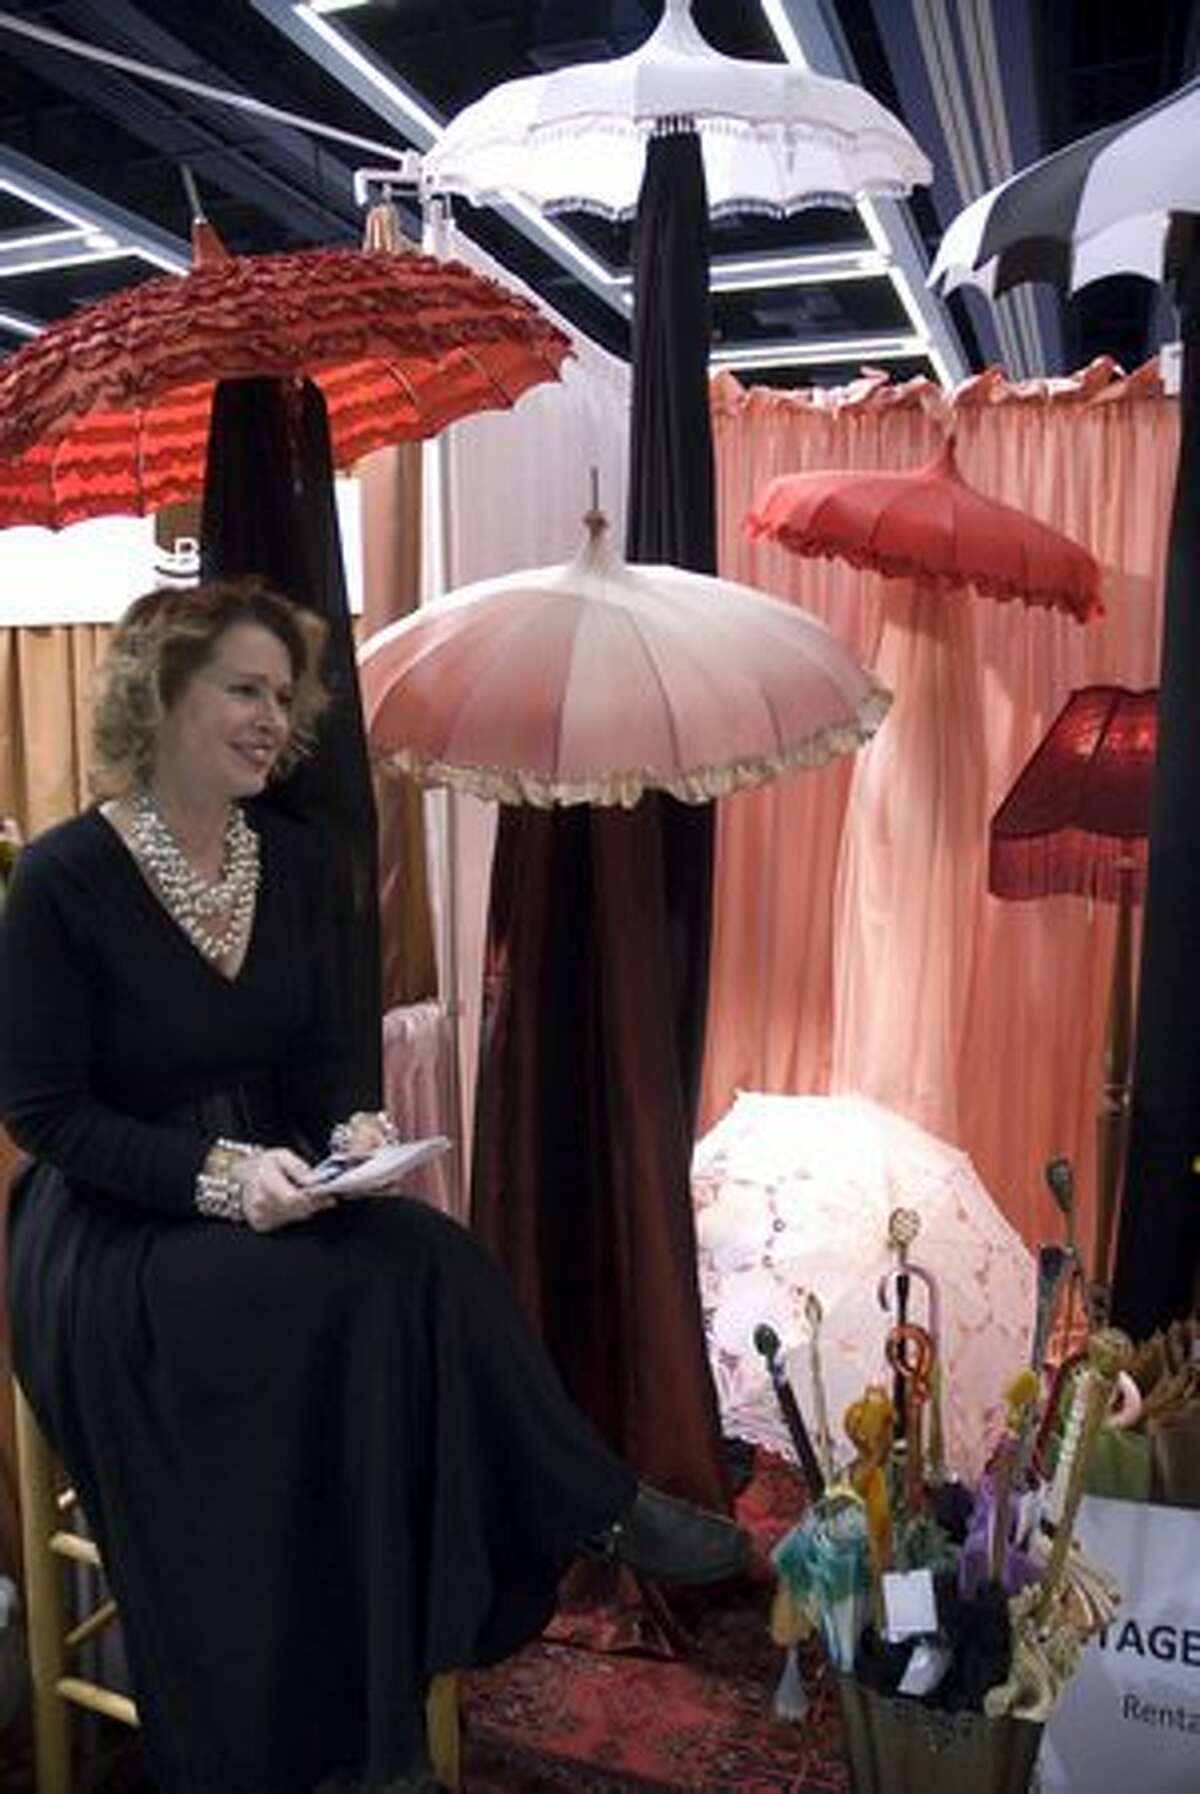 Jodell Egbert sells vintage umbrellas for brides and bridesmaids at Bella Umbrellas. The 20th annual Seattle Wedding Show took place at the Washington State Convention and Trade Center Jan. 16-17. Read about the 5 coolest booths at the show here. (Rebecca Livingston/seattlepi.com)